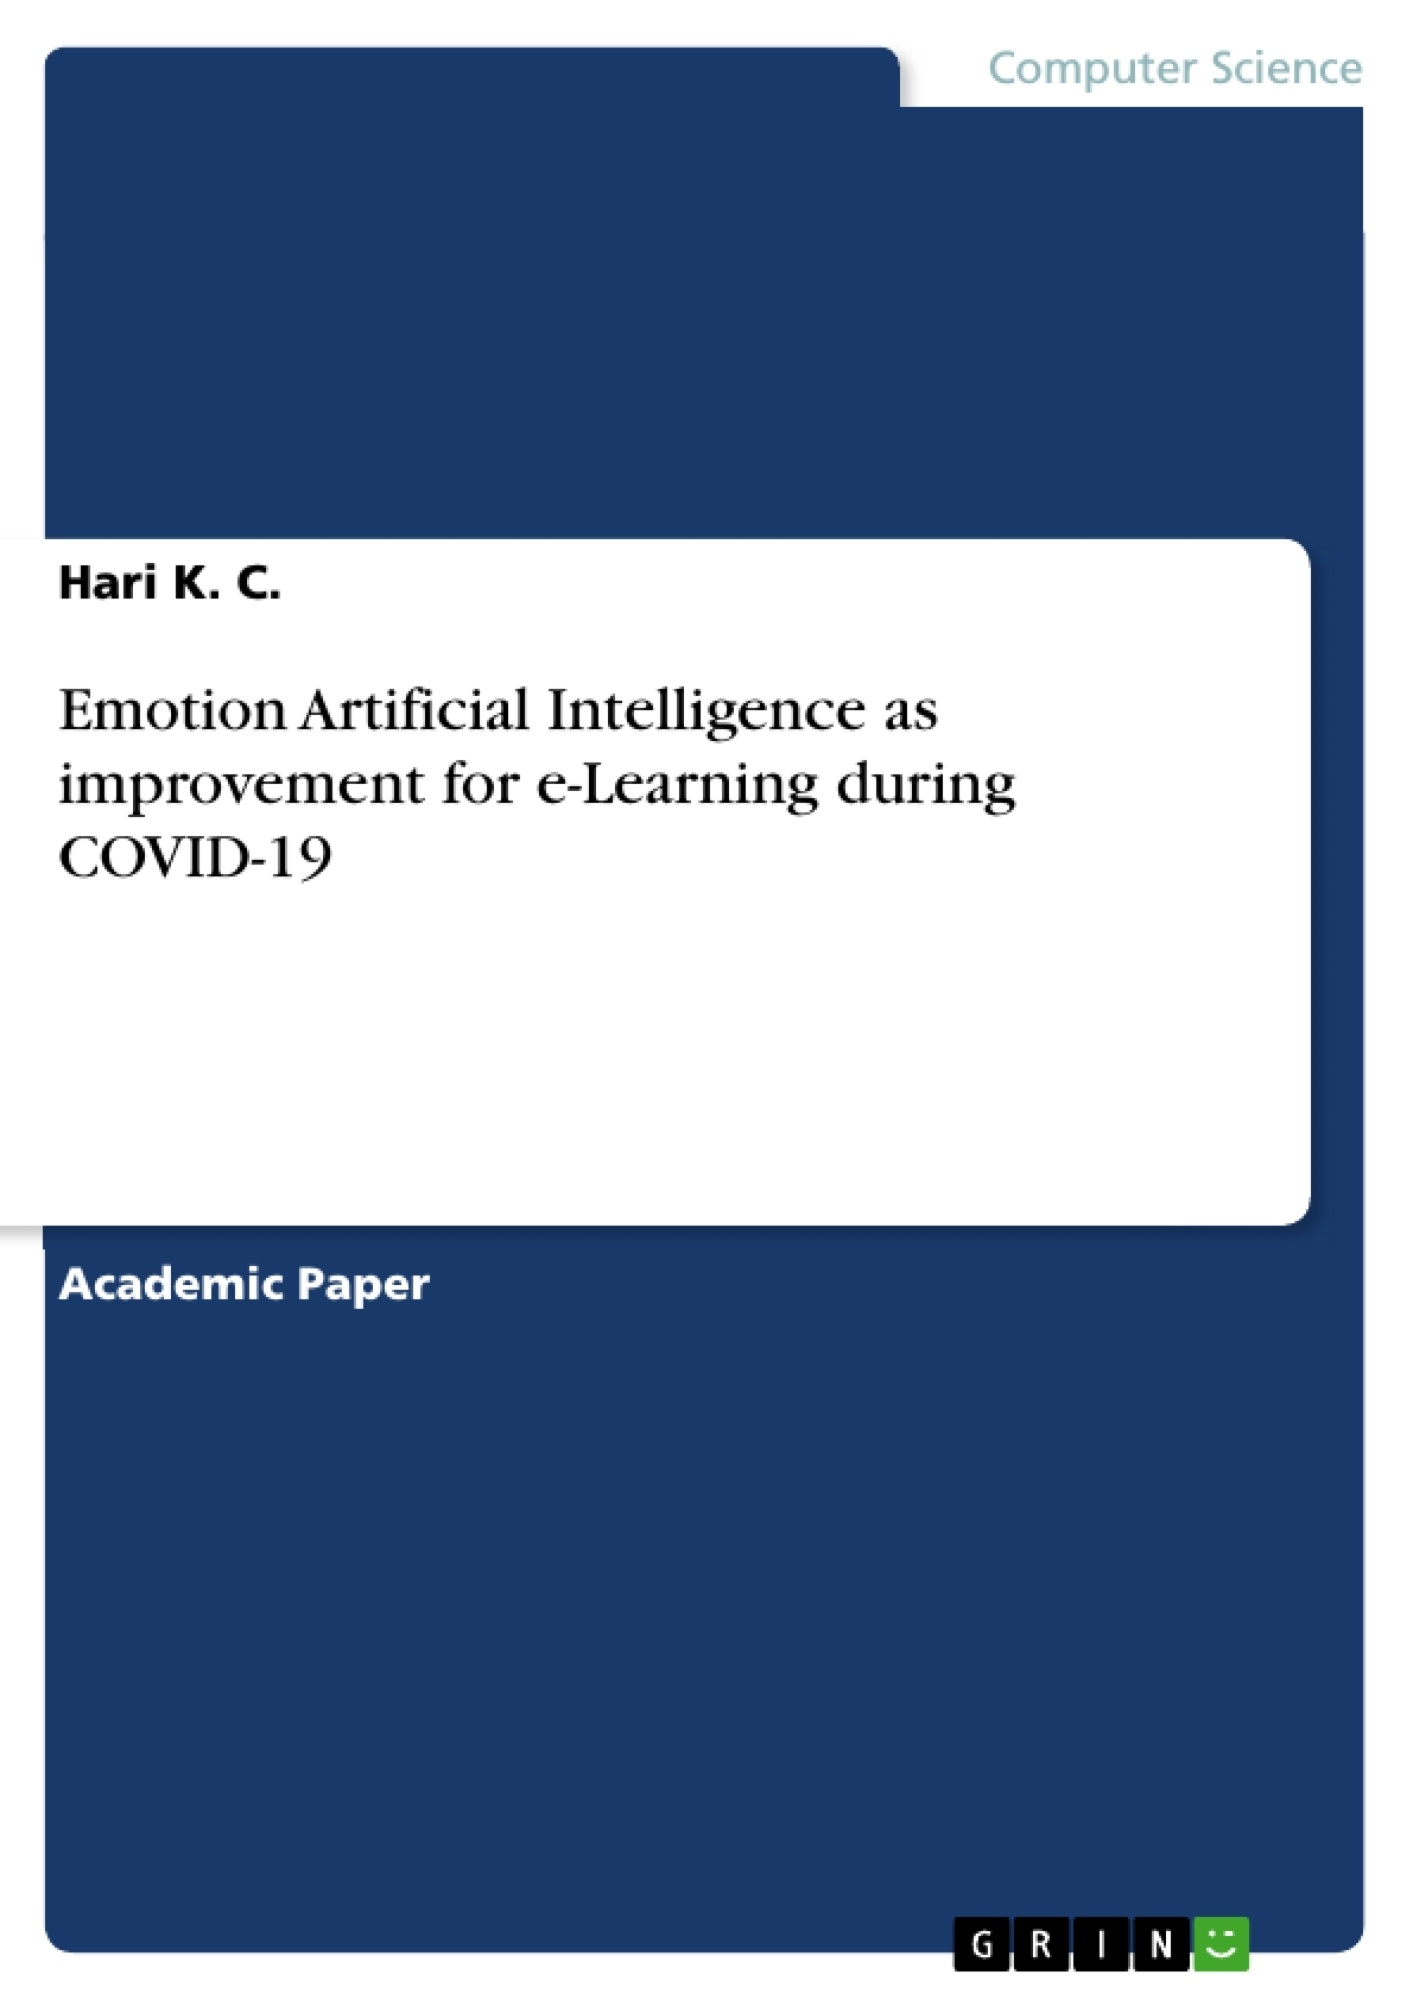 Title: Emotion Artificial Intelligence as improvement for e-Learning during COVID-19